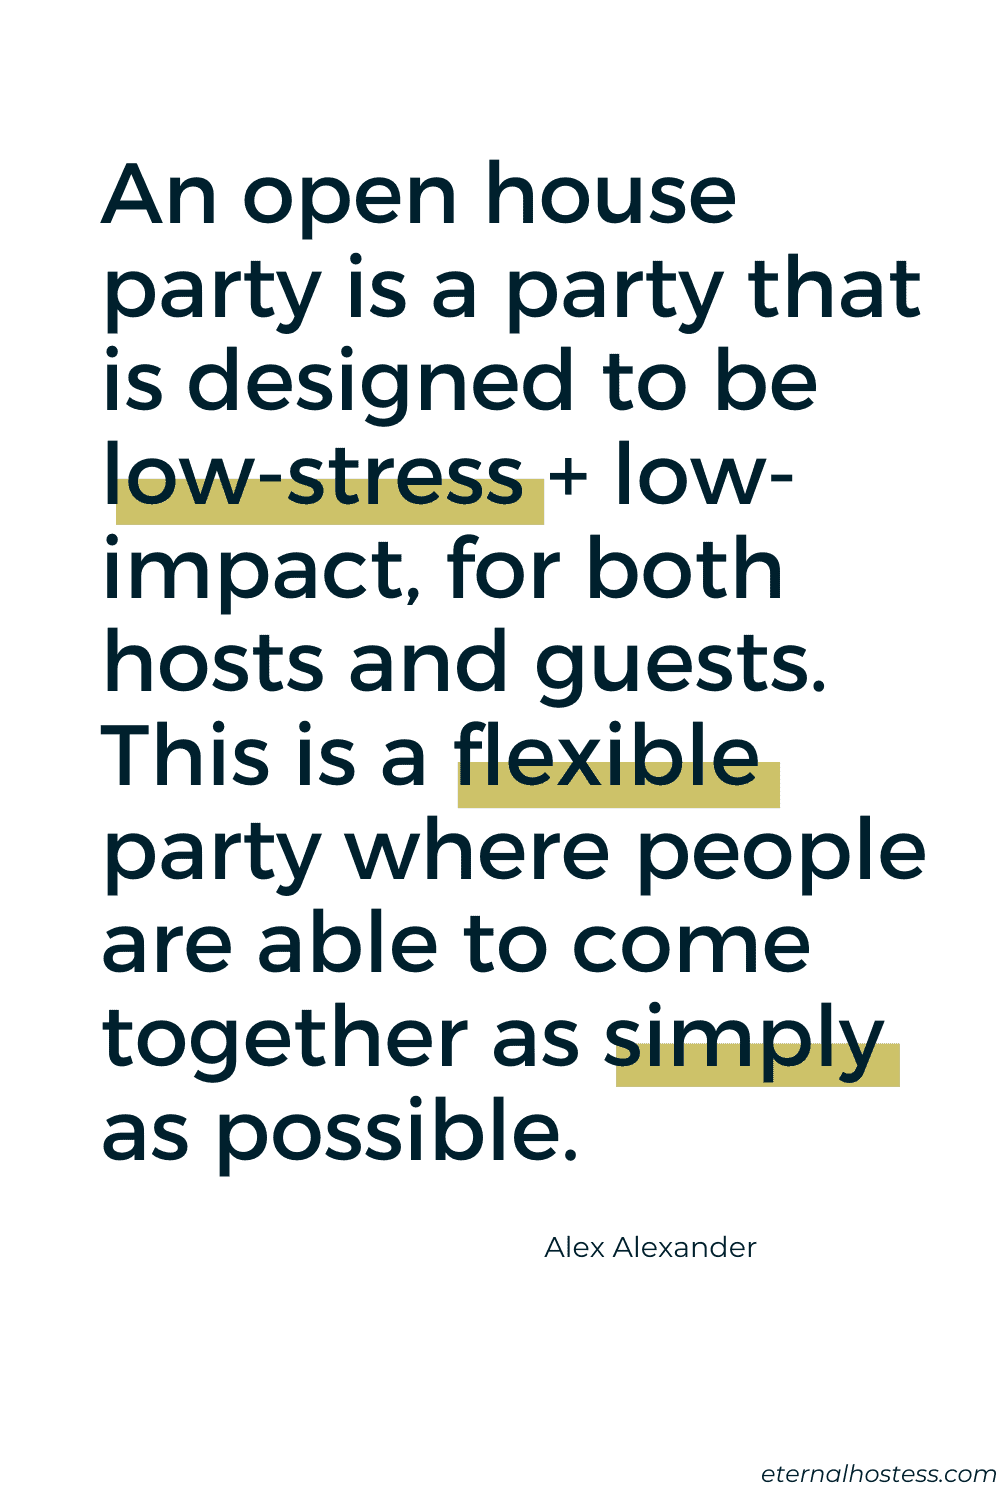 "Quote in bold blue text. Says ""An open hoiuse party is a party that is designed to be low-stress and low-impact for both hosts and guests. This is a flexible party where people come together as simply as possible."""